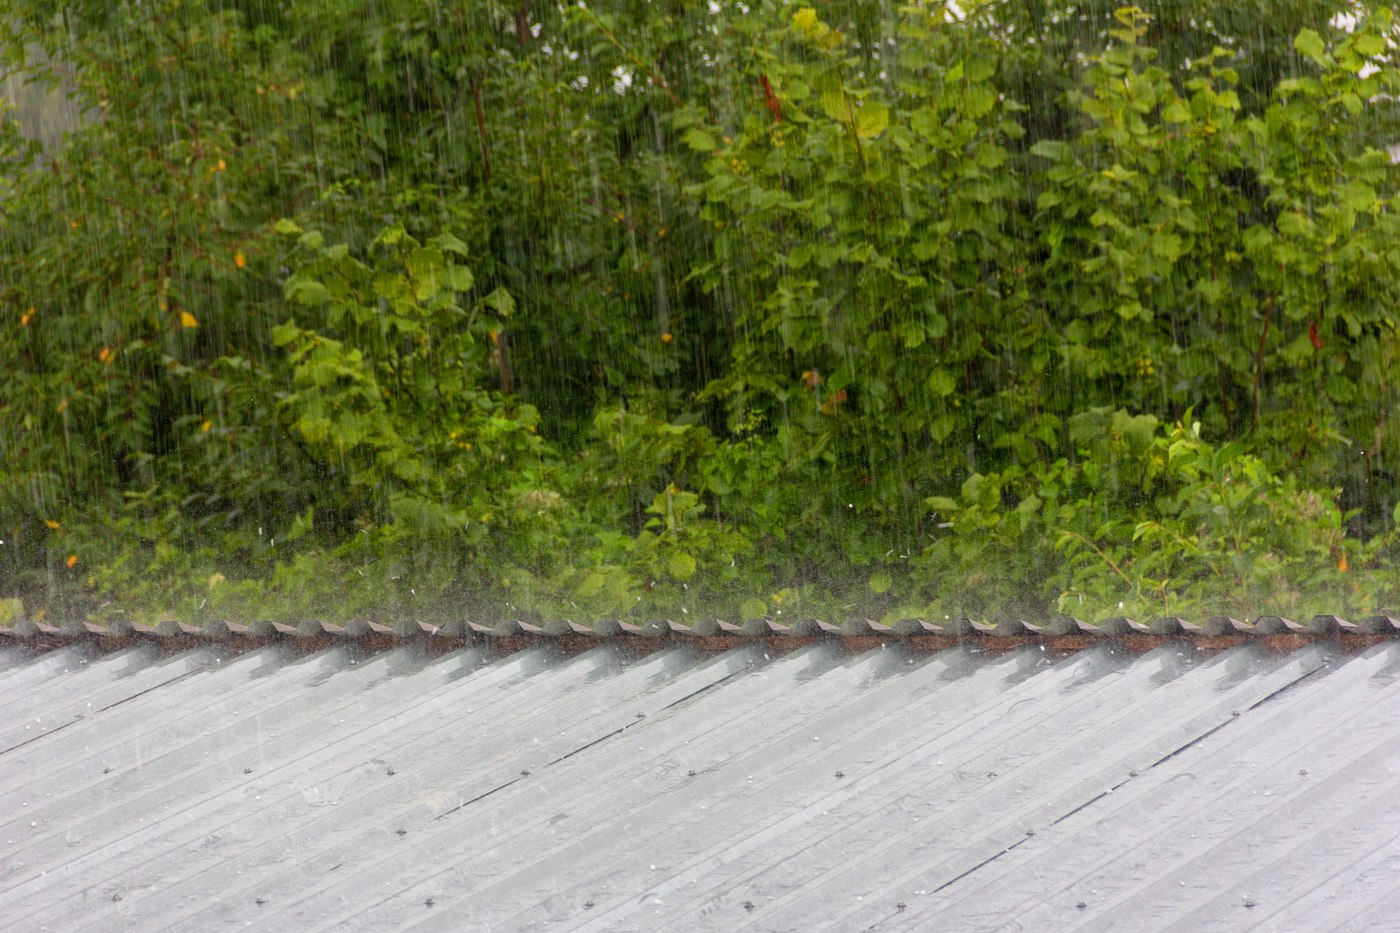 Small hail hitting metal roof